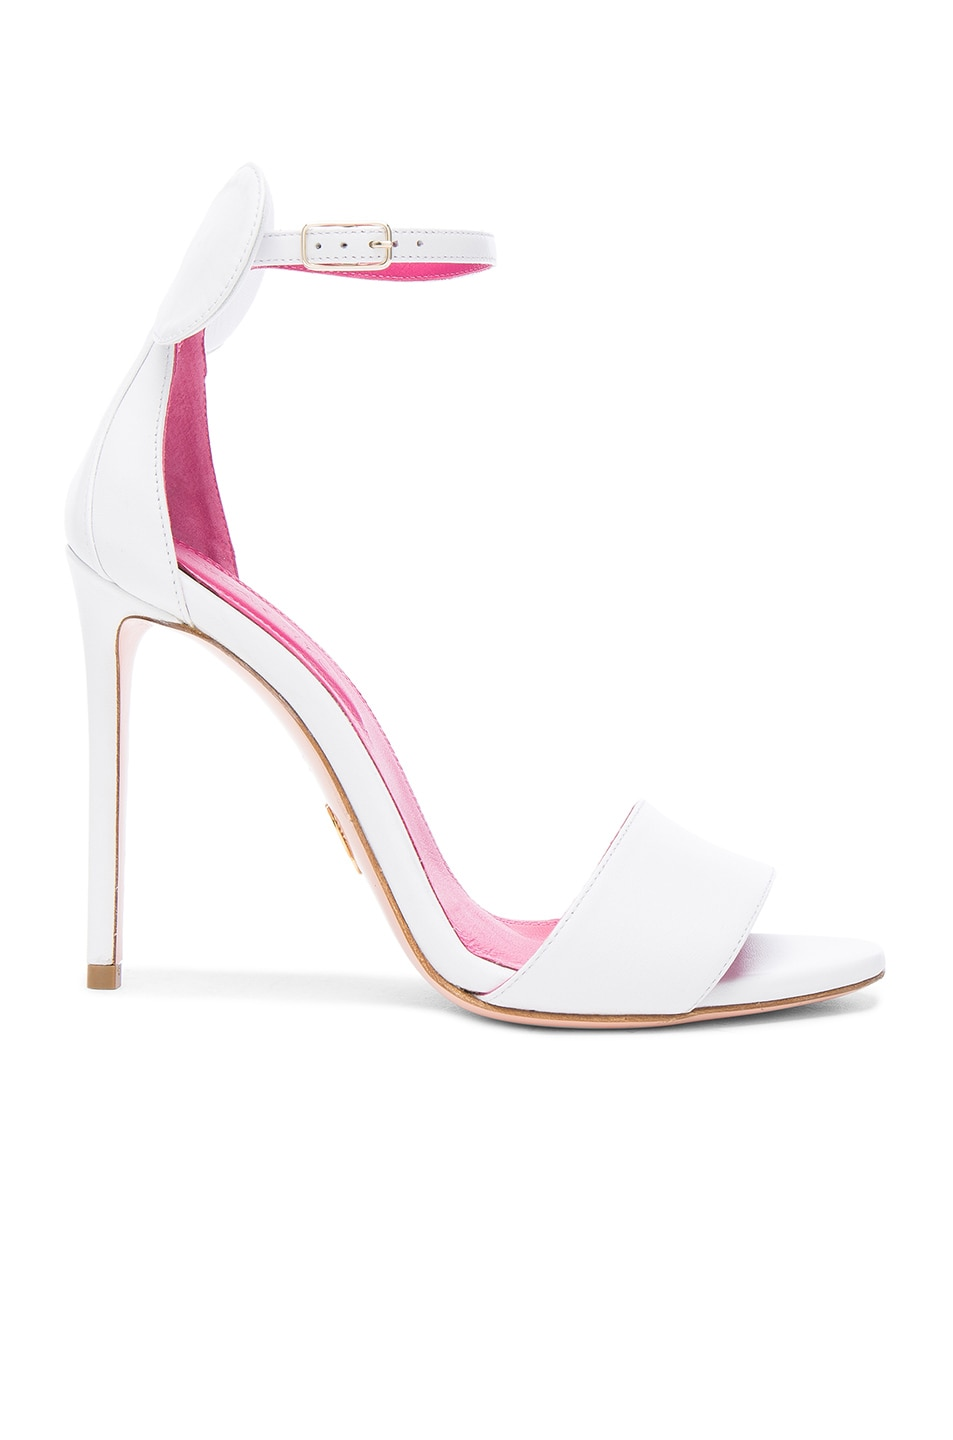 Image 1 of Oscar Tiye Leather Minnie Sandals in White Leather